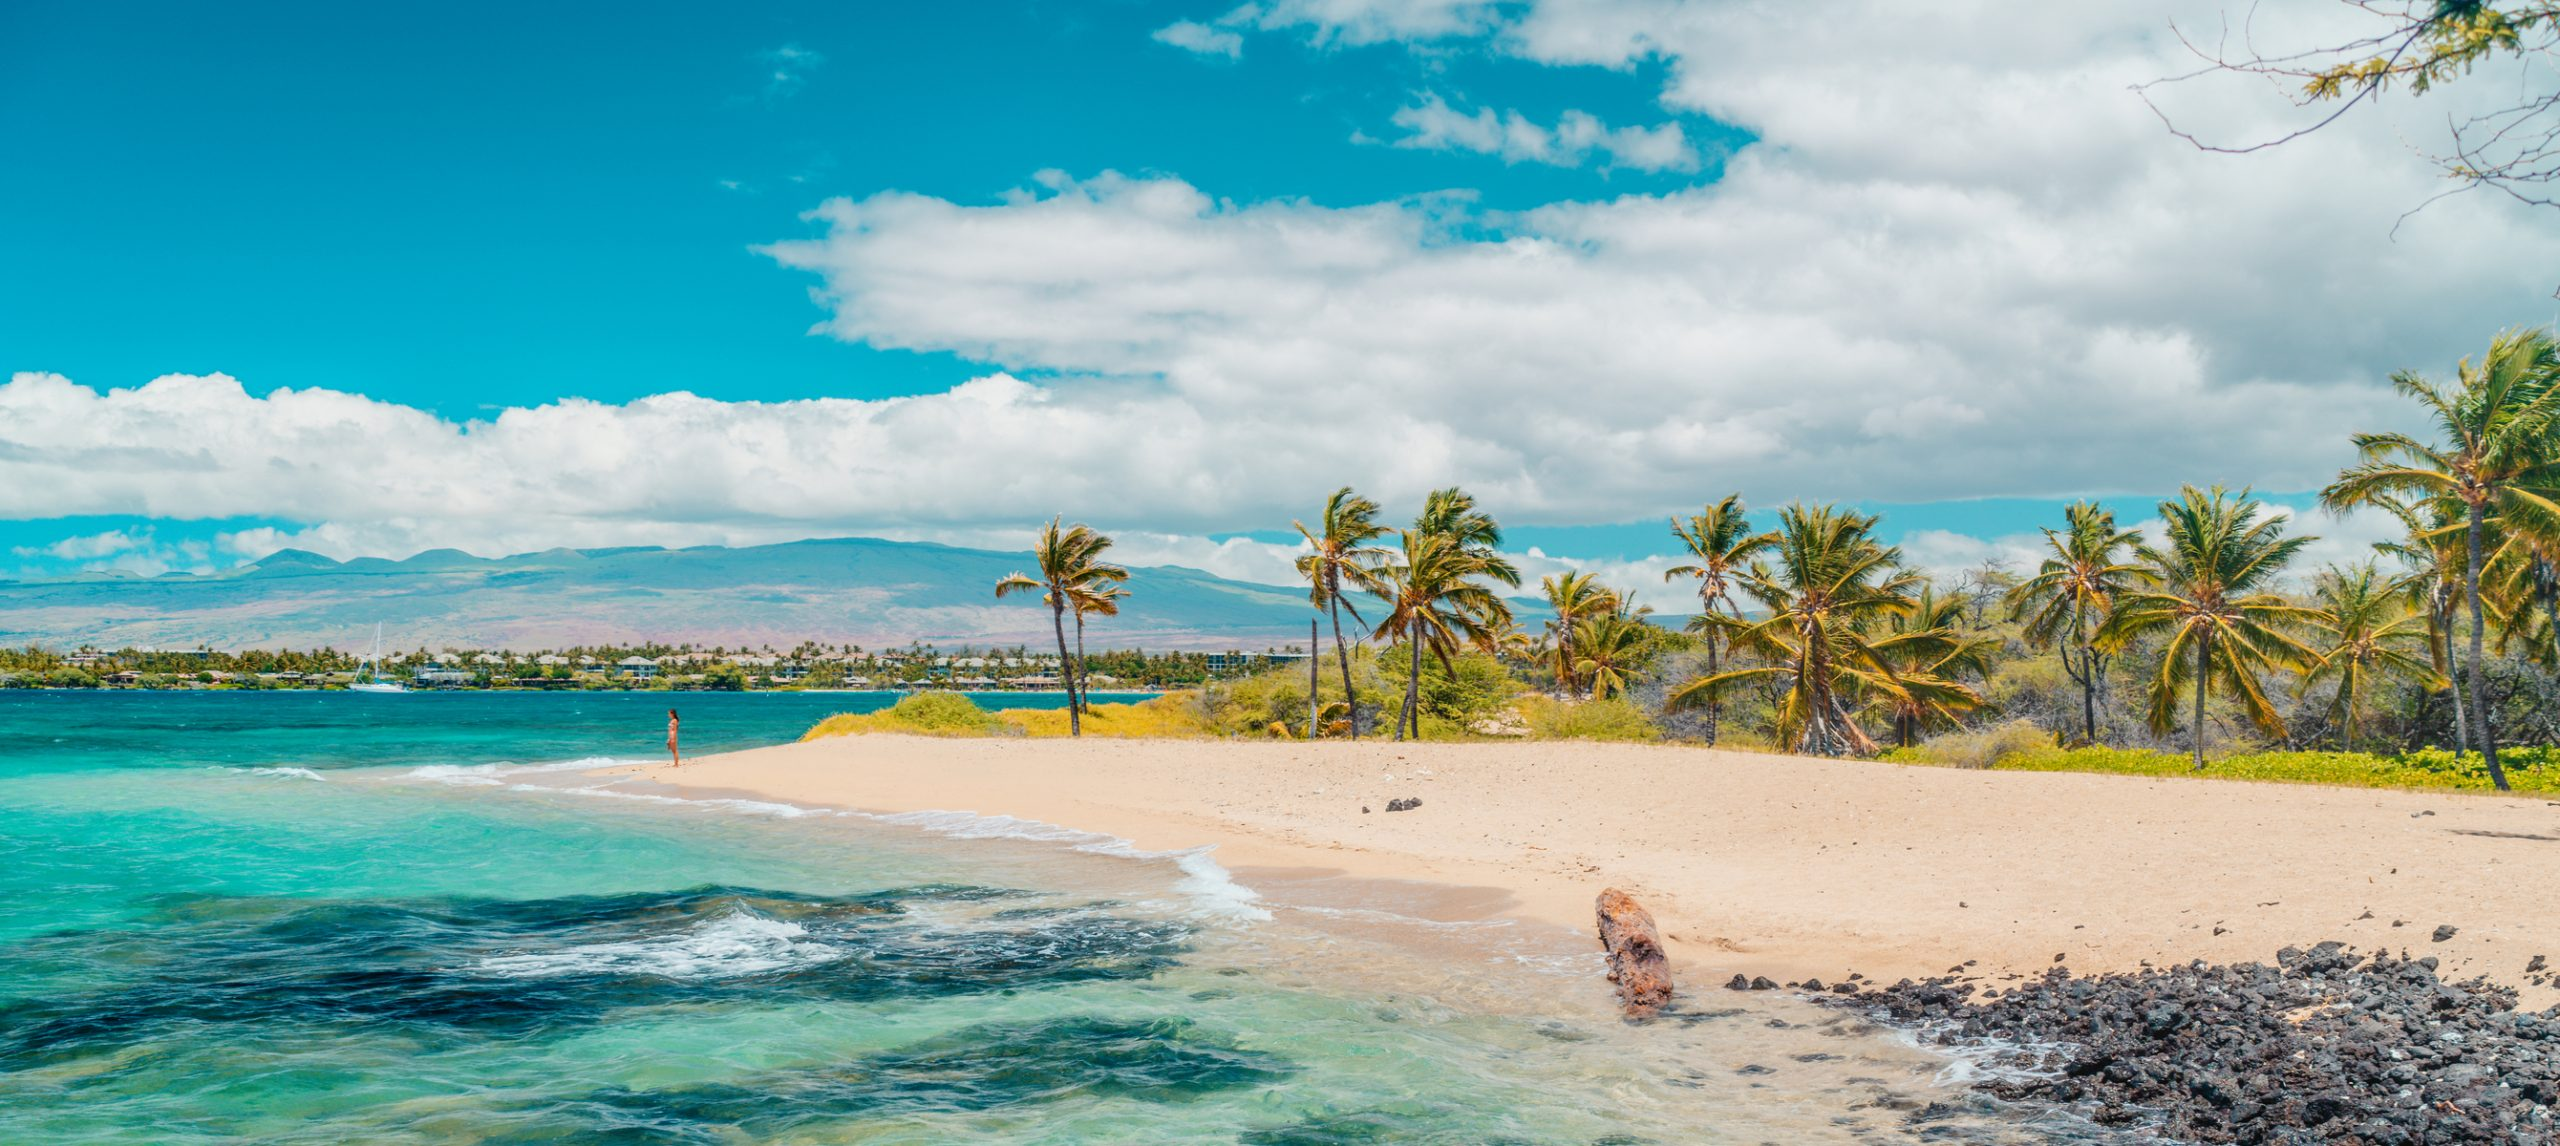 The 10 Best Budget Beach Breaks In The USA